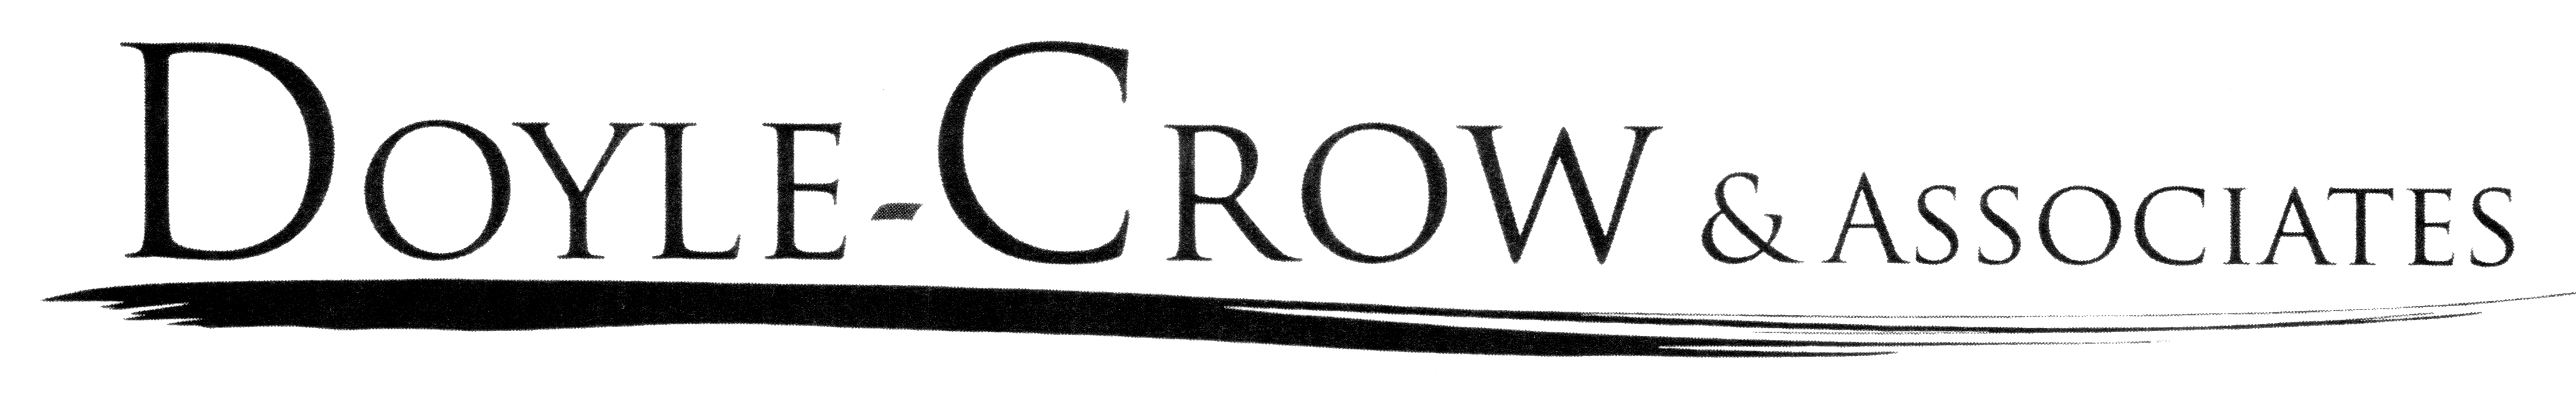 Doyle-Crow & Associates